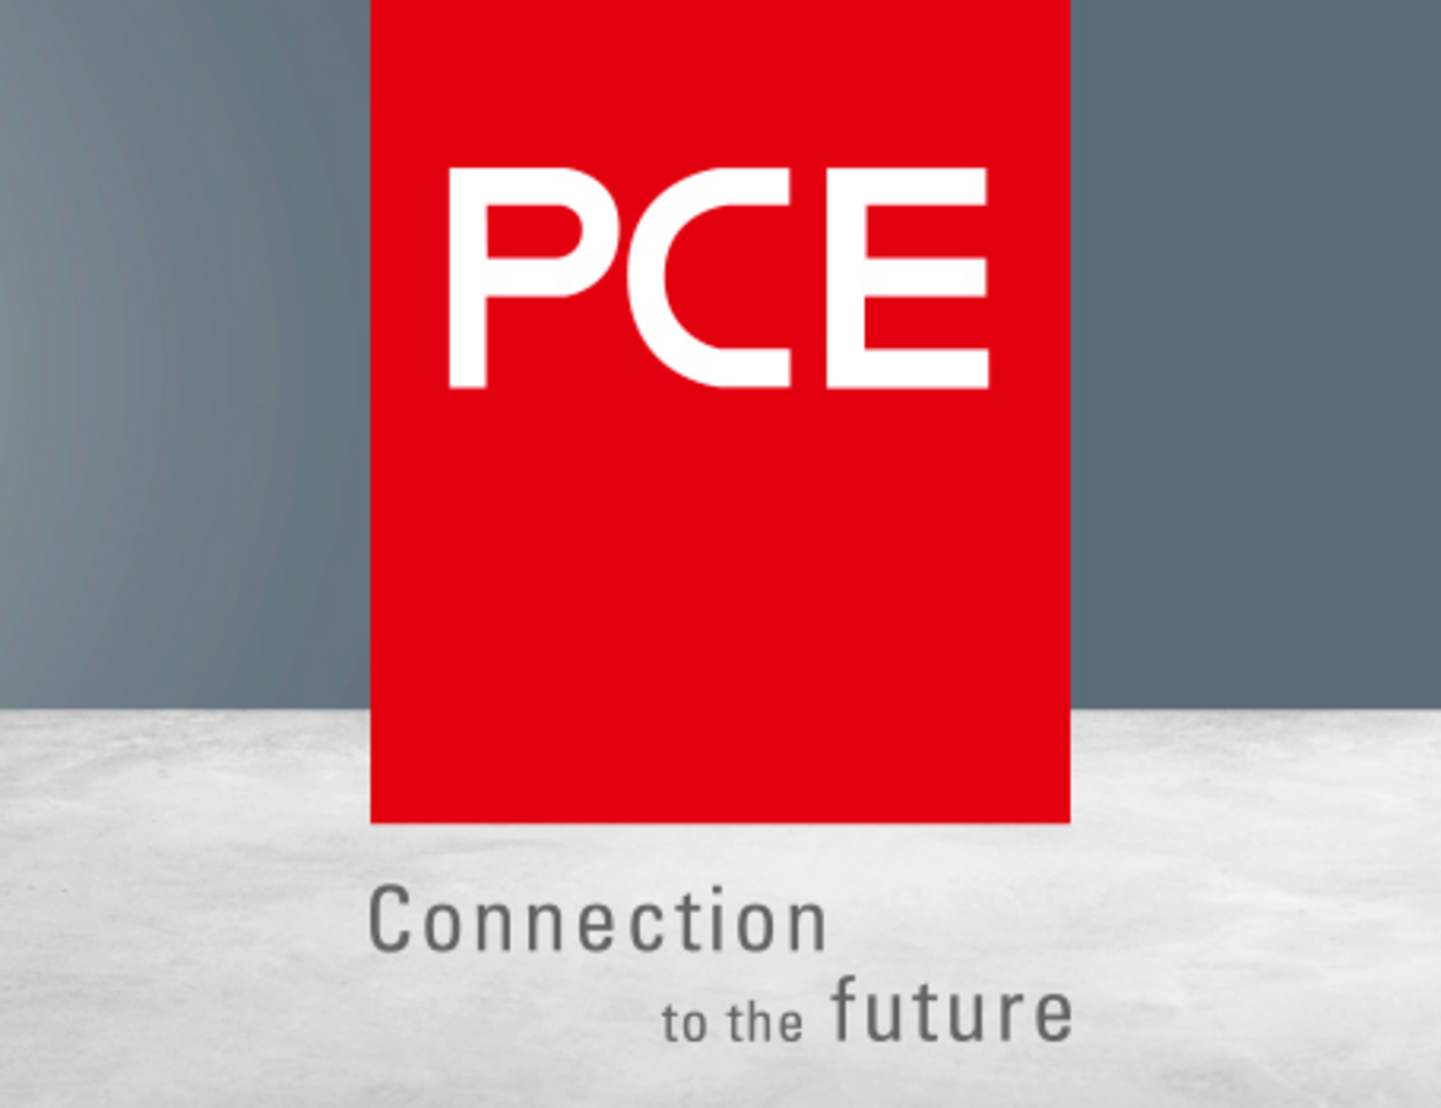 PC ELECTRIC GESMBH - Connection to the future